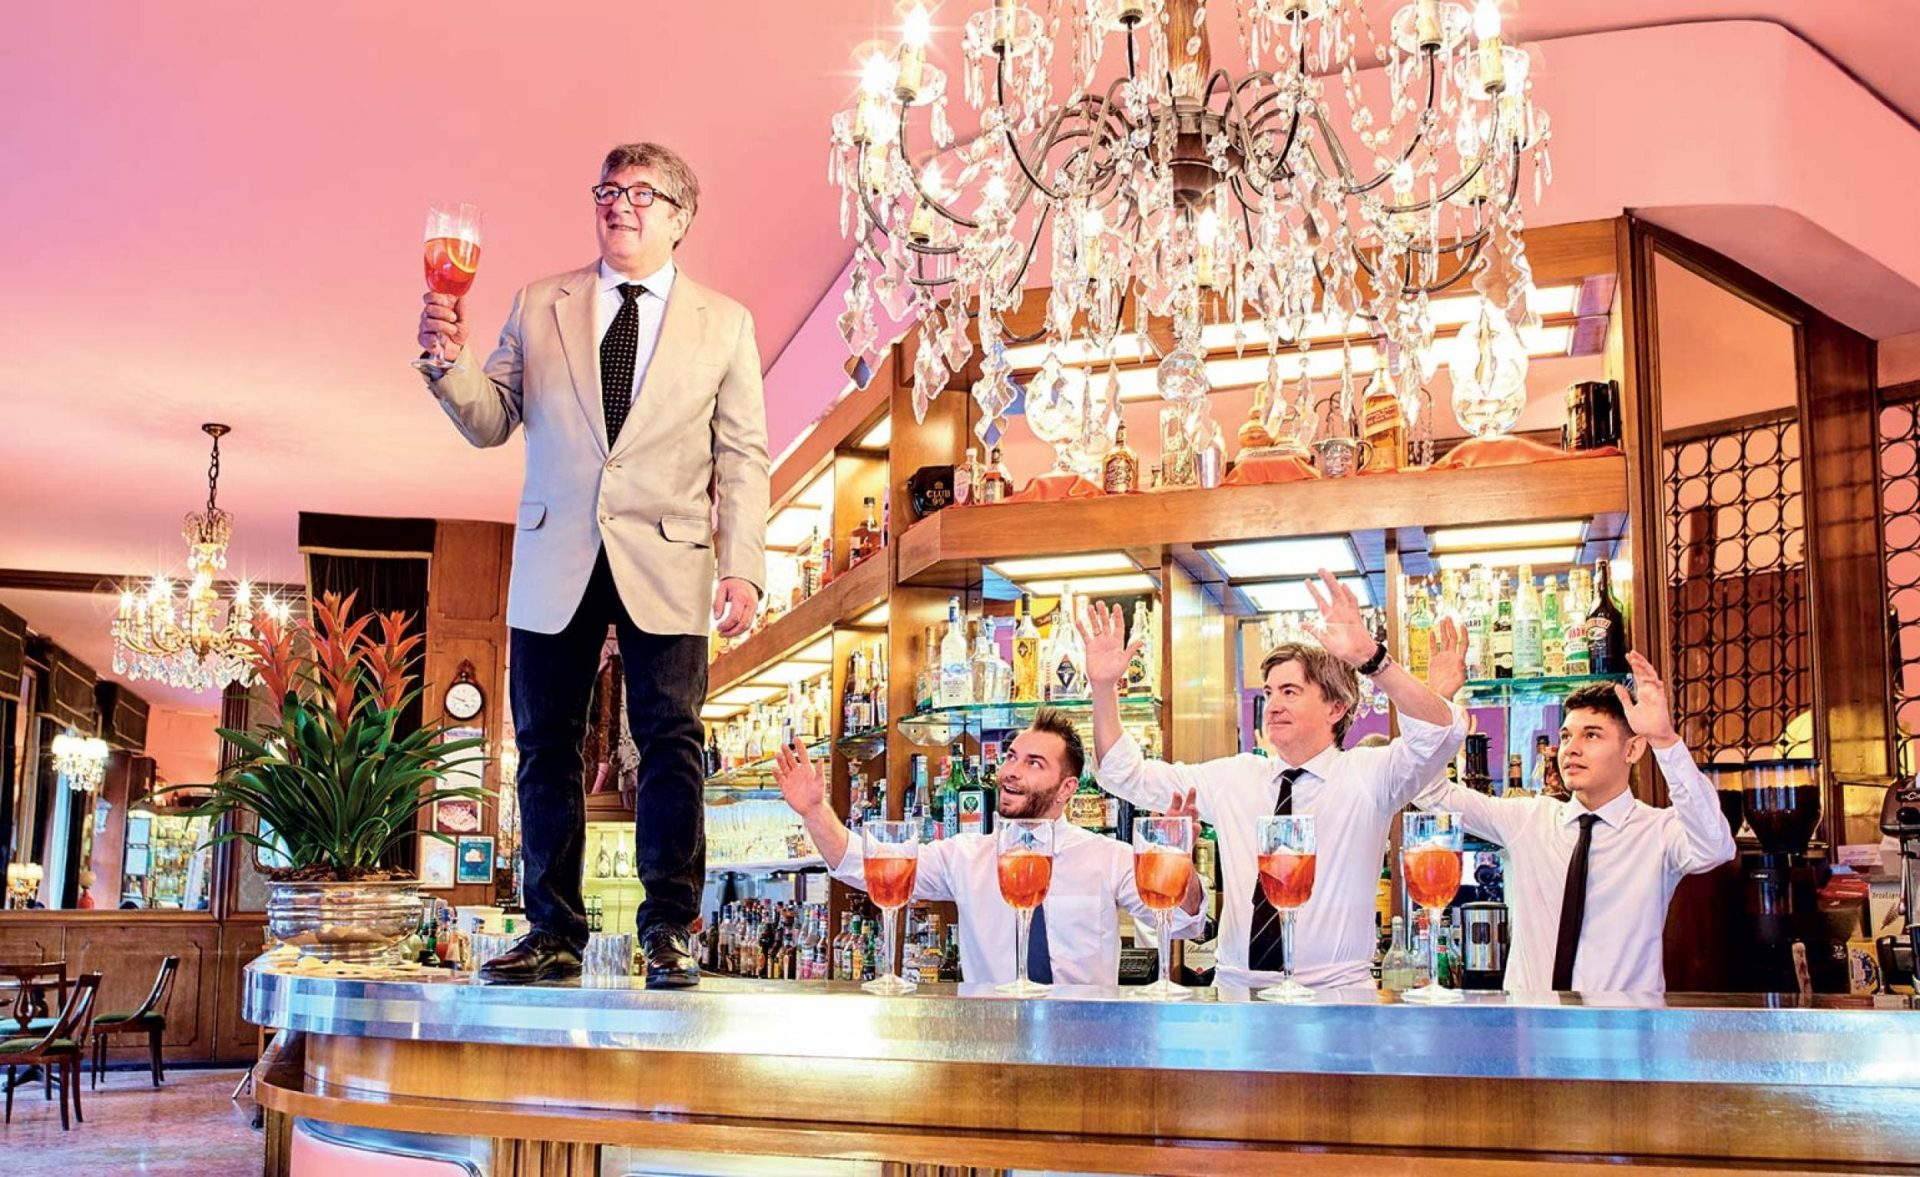 a man in a suit standing on top of a bar holding a drink with three men in suits behind the bar holding drinks